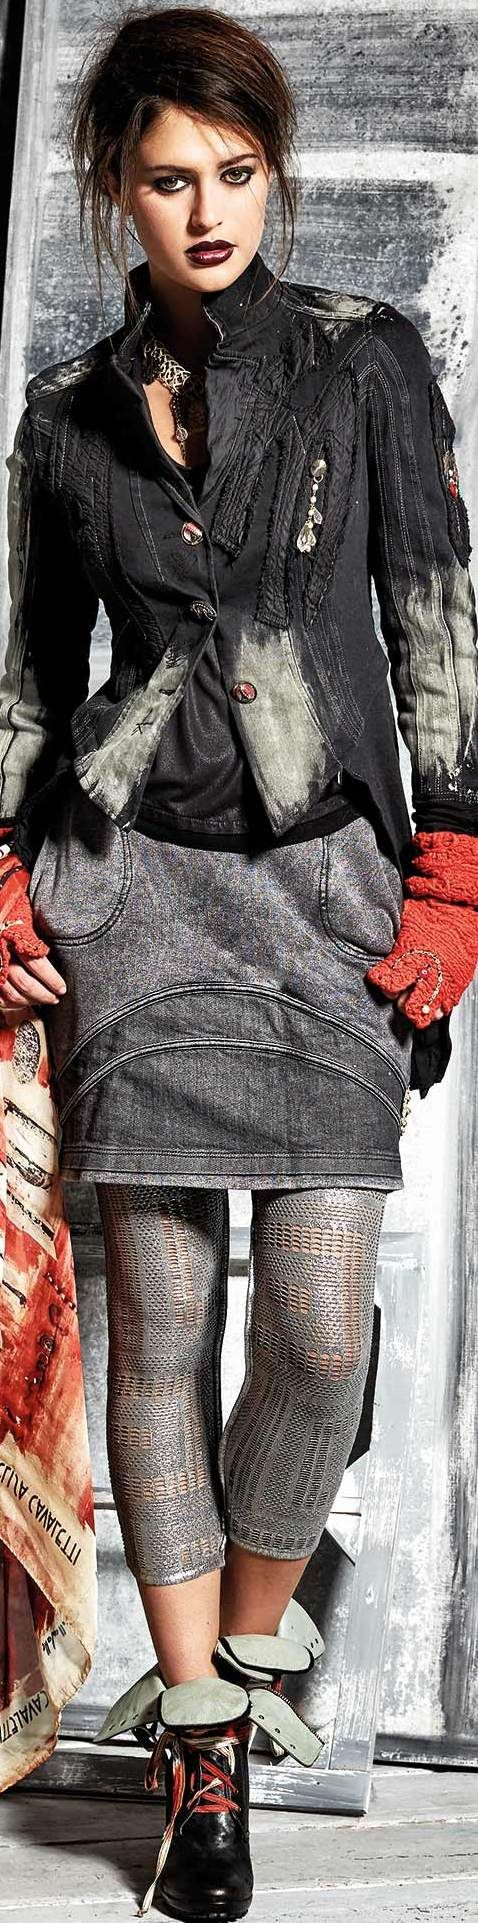 Elisa Cavaletti Fall / Winter 2015-16 (the tone this outfit sets)